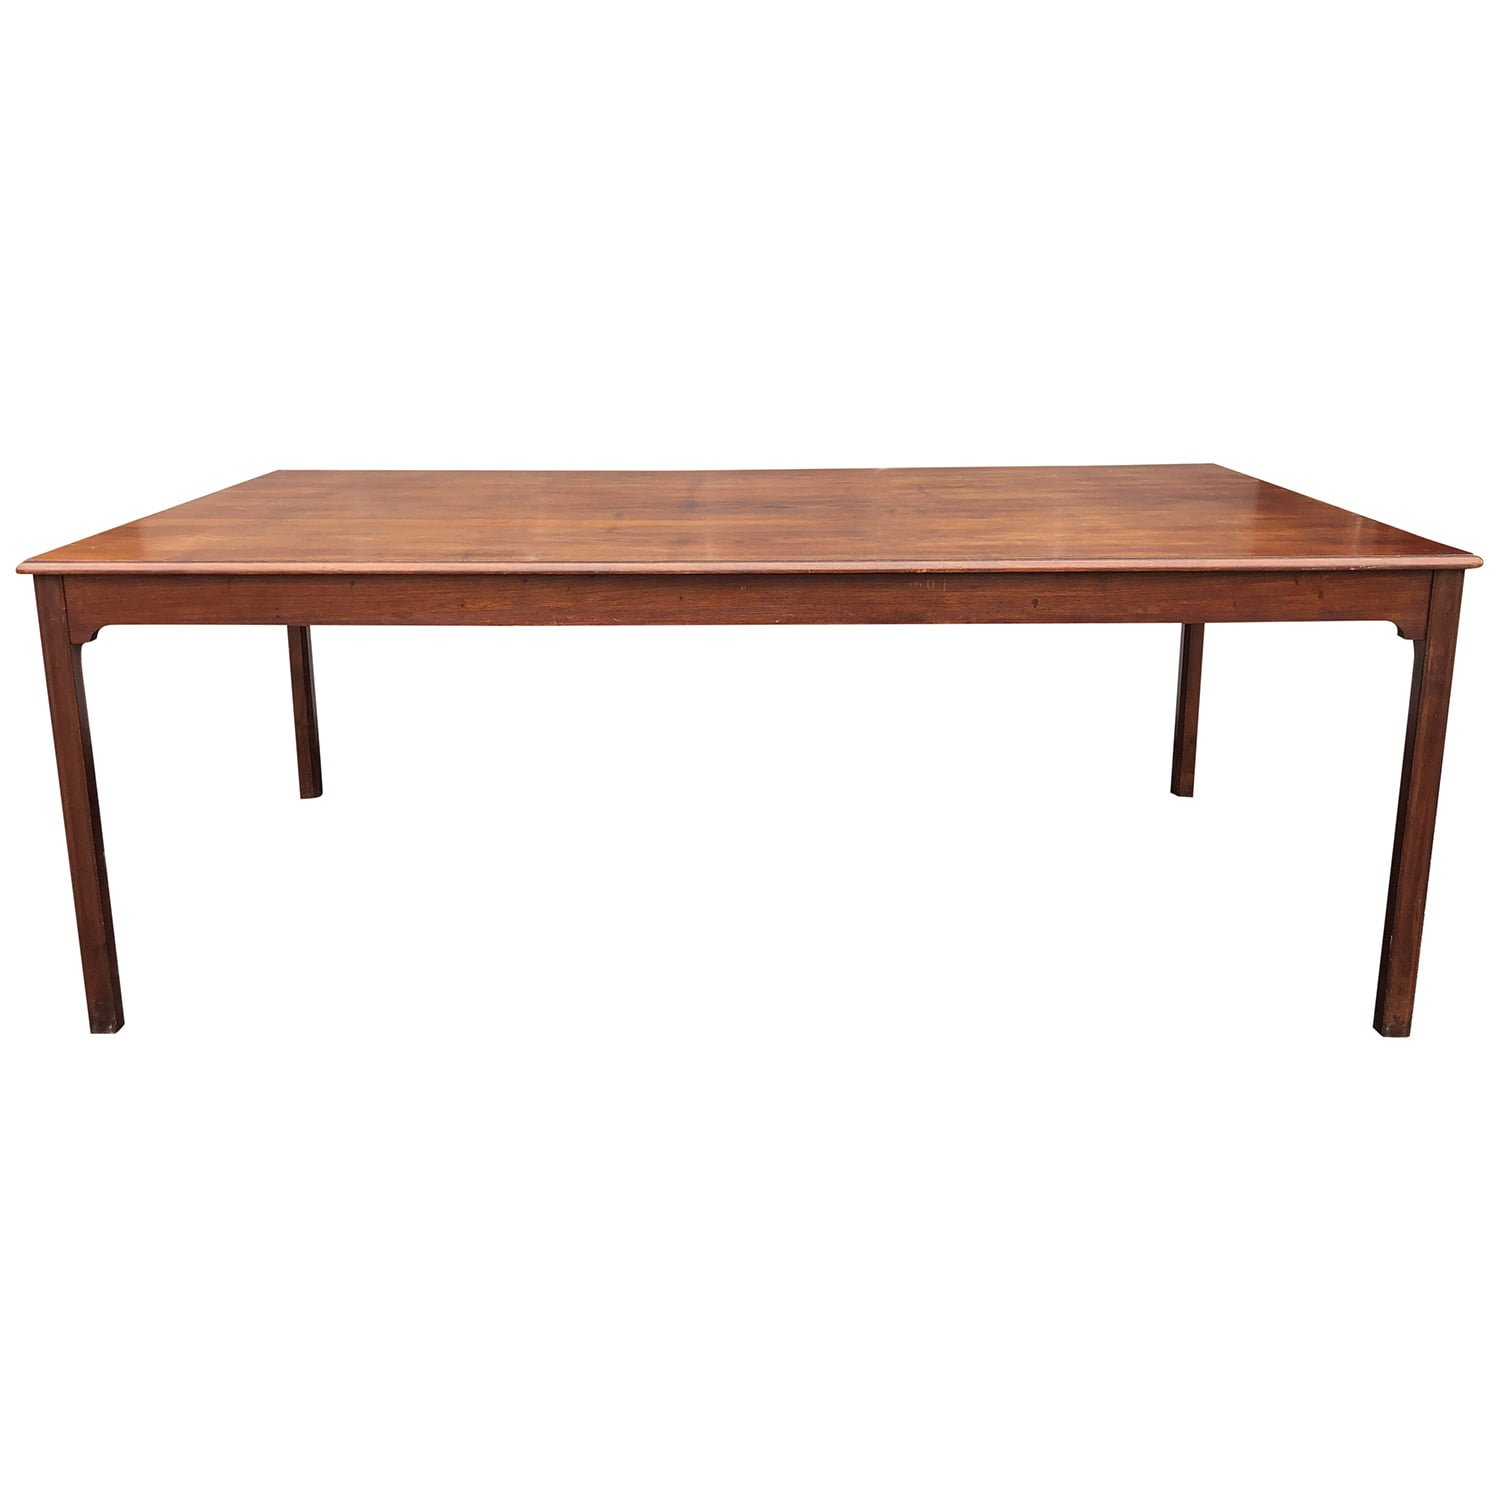 20th Century Center Table – Danish Cuban Mahogany Dining Table by Kaare Klint